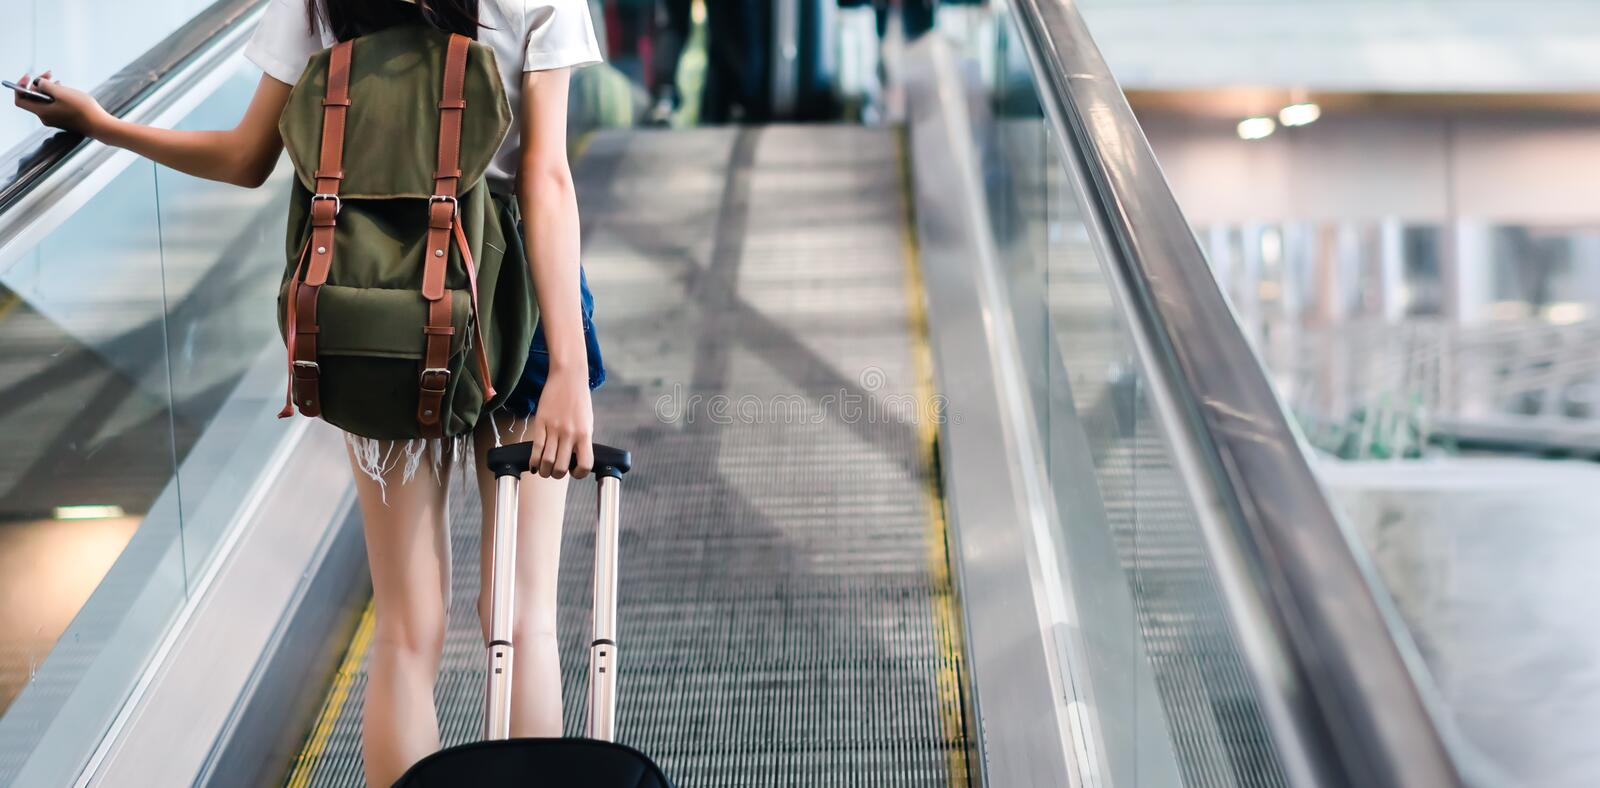 Midsection Woman With Luggage Traveling at Airport. Terminal Vacation Summer Relaxation holding Suitcase and Backpack stock photo